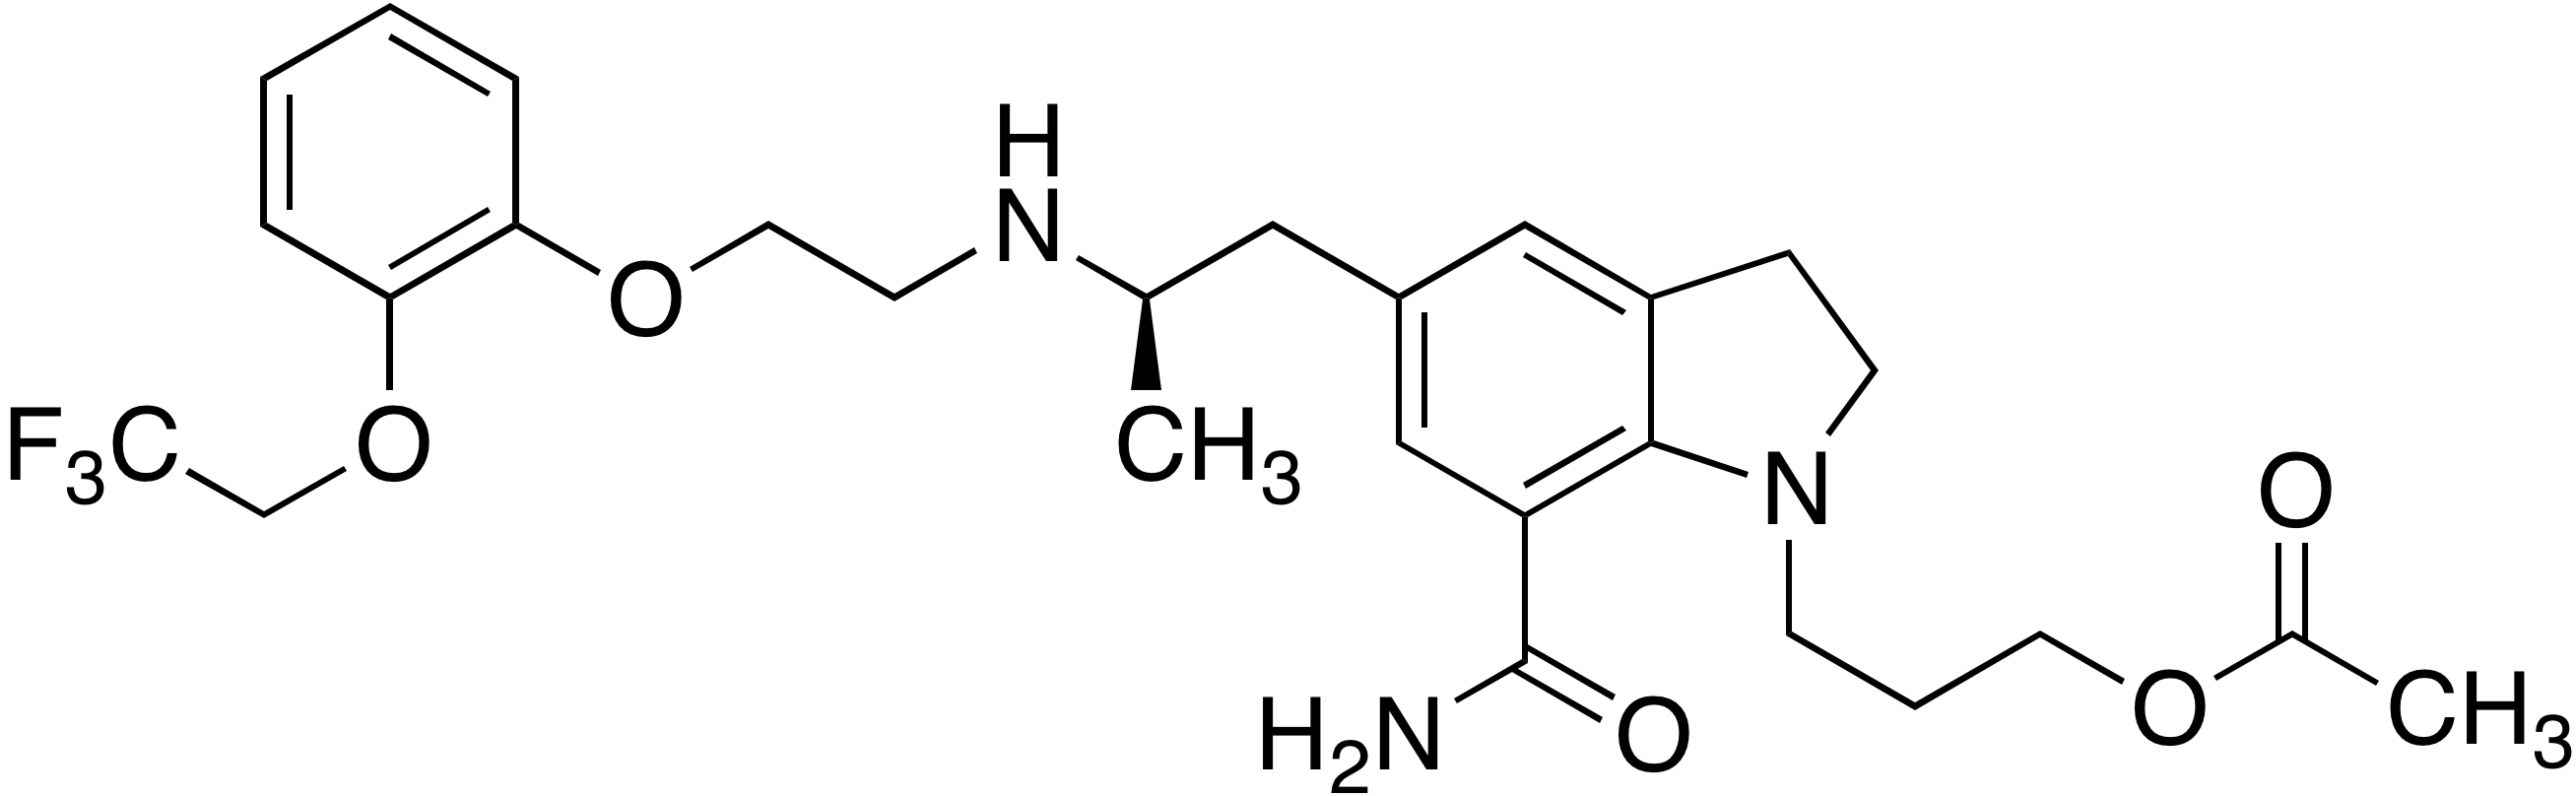 Silodosin impurity 6